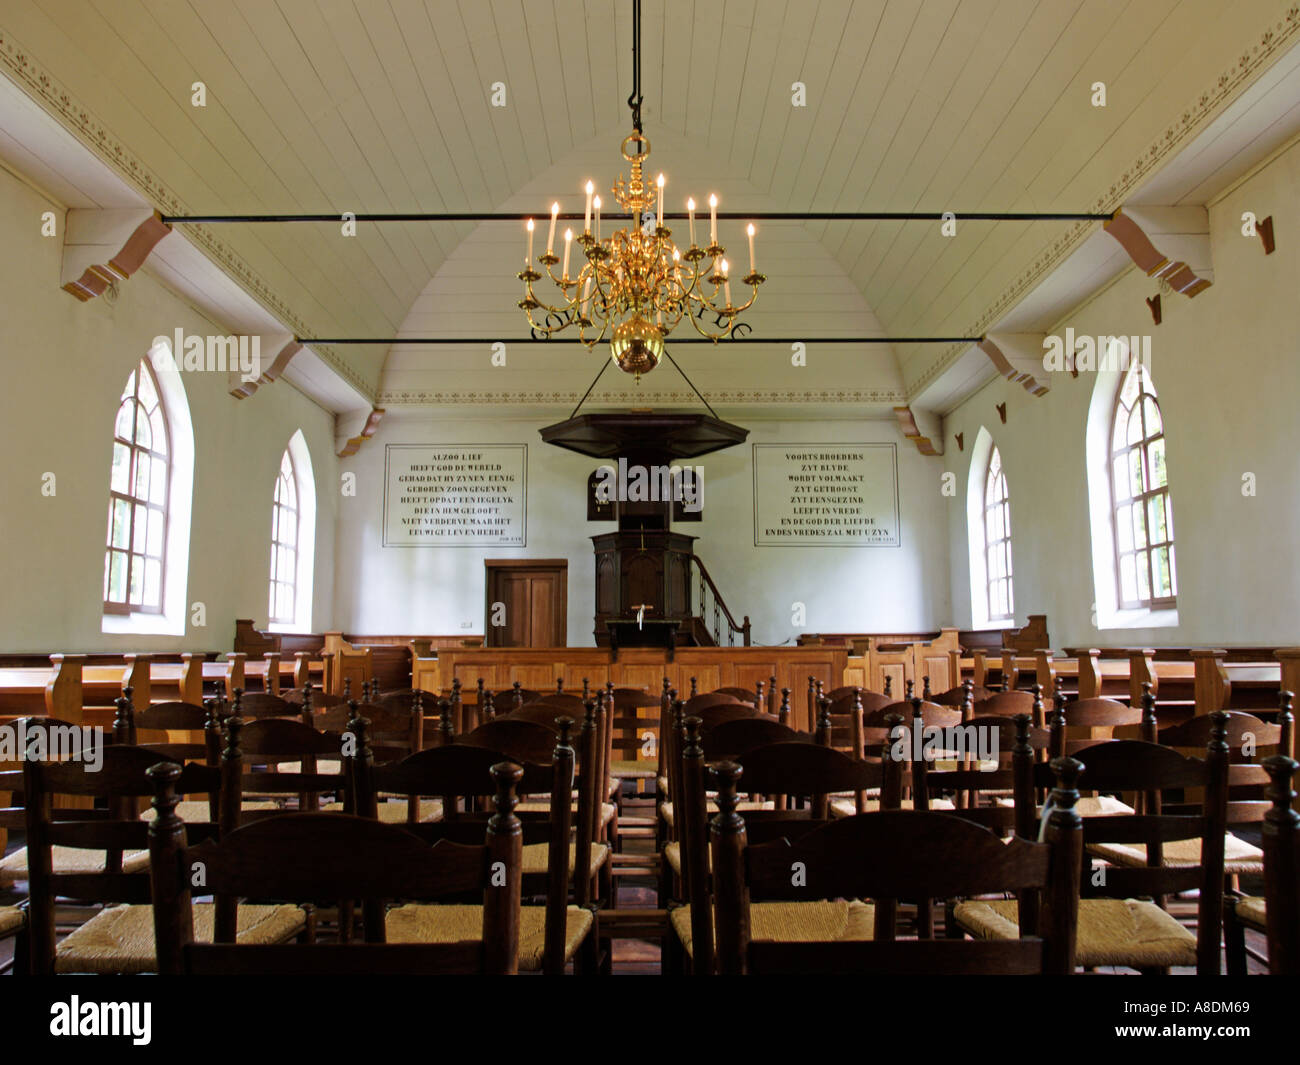 Interior of a small sober historic protestant church building with ...